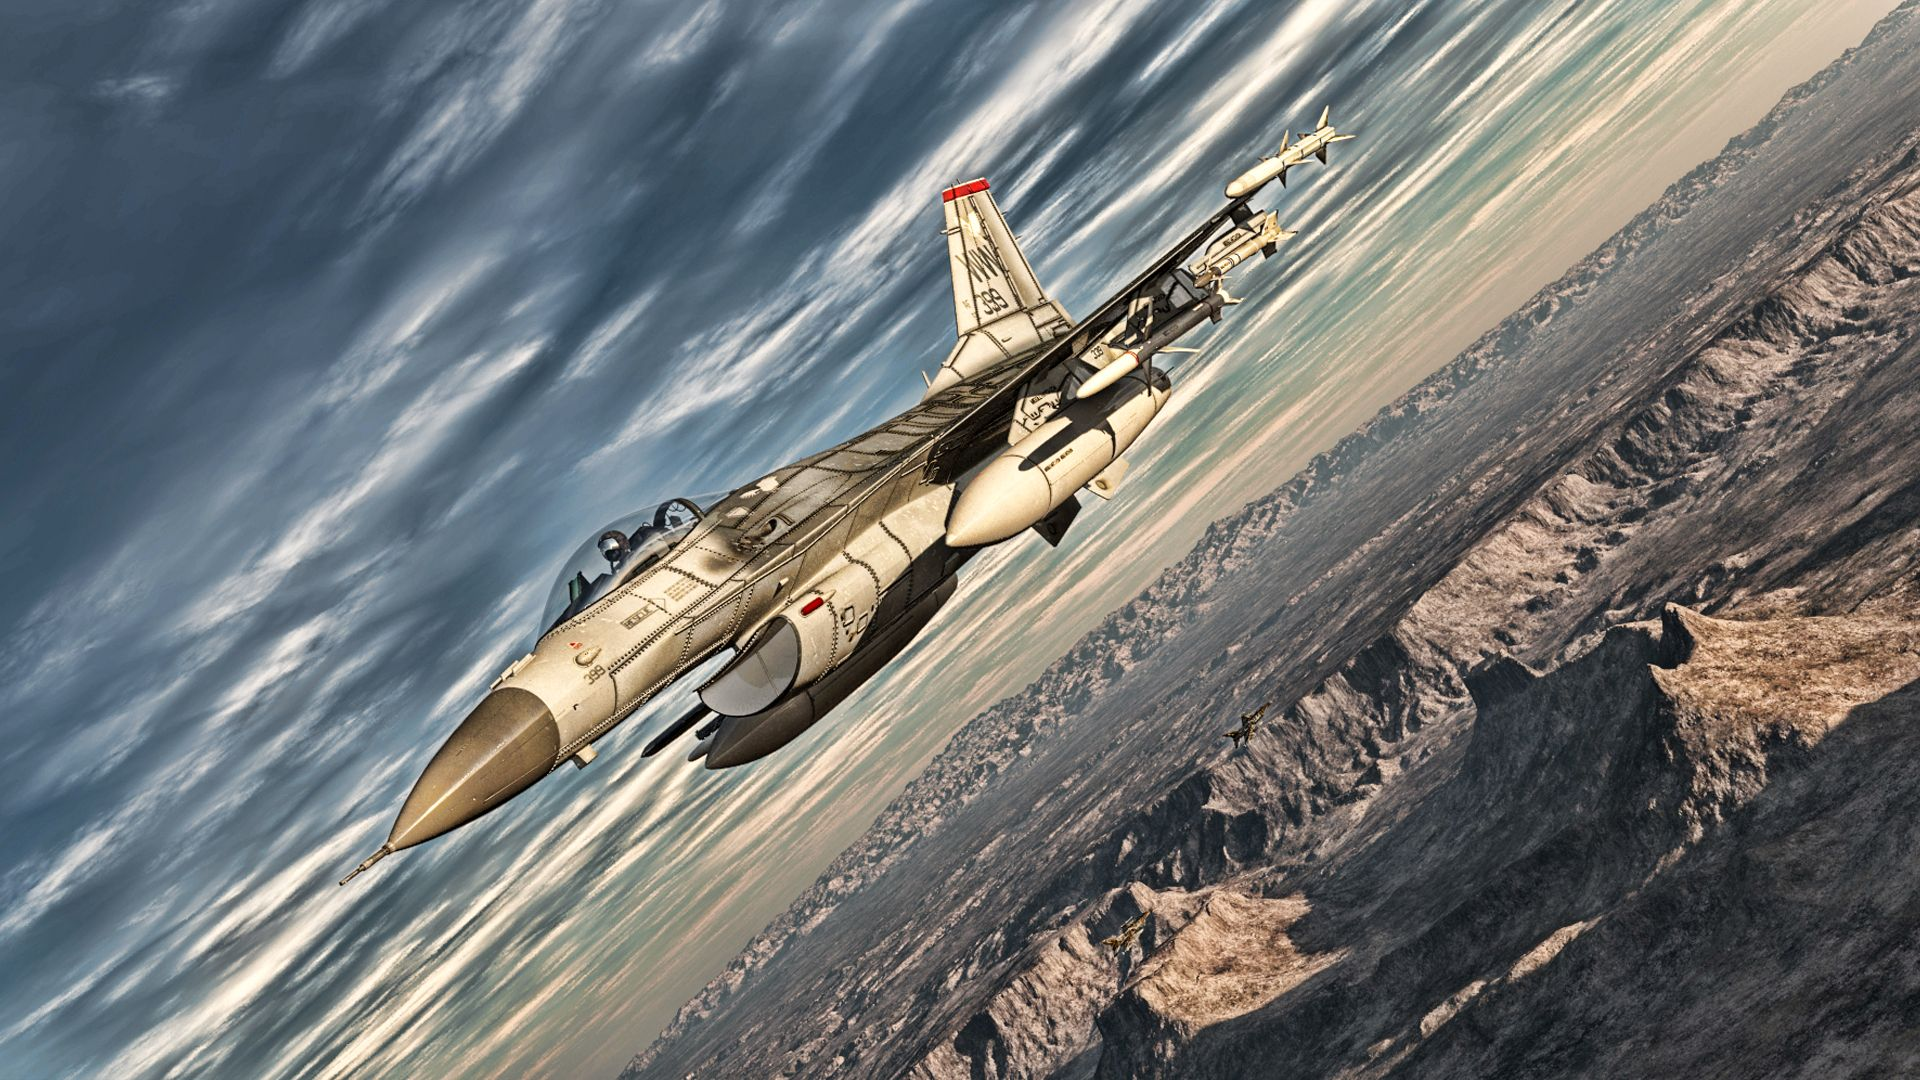 Stunning f16 Wallpaper